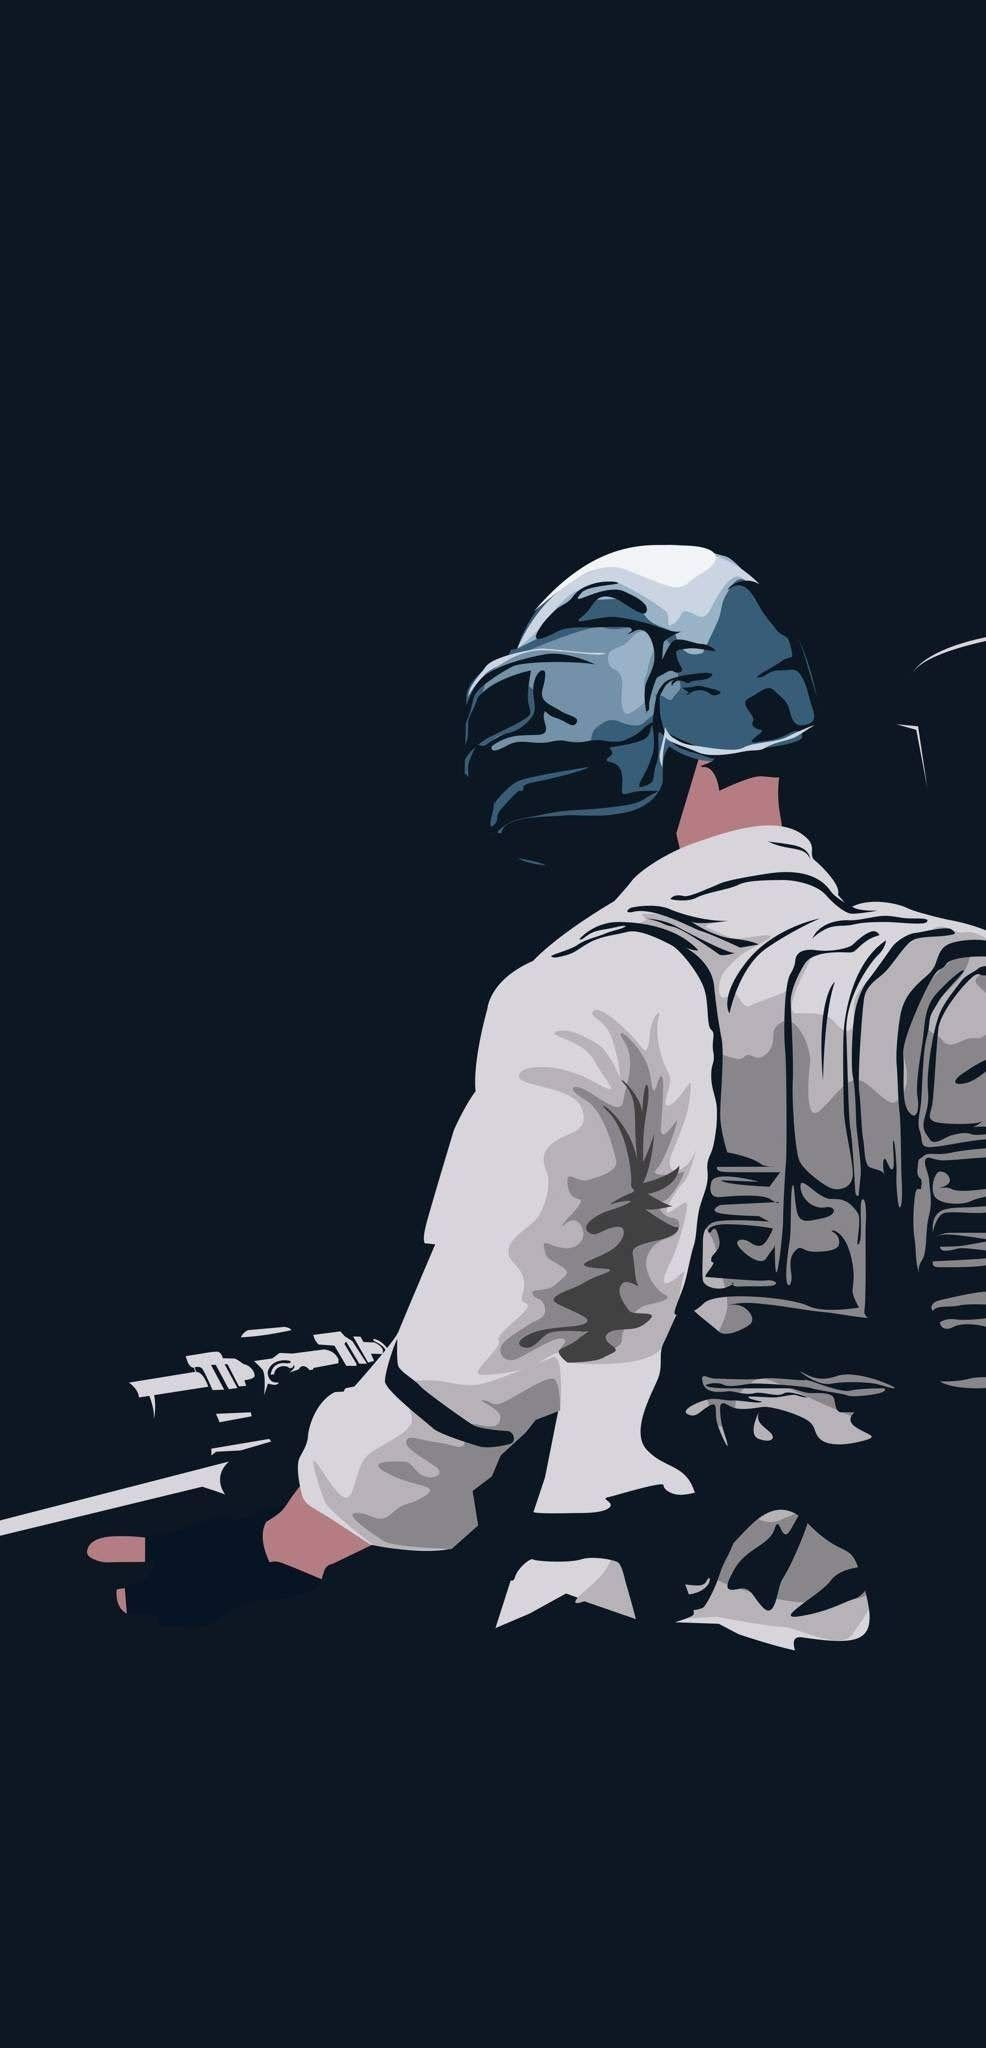 List of Cool Illustration Phone Wallpaper HD 2020 by Uploaded by user